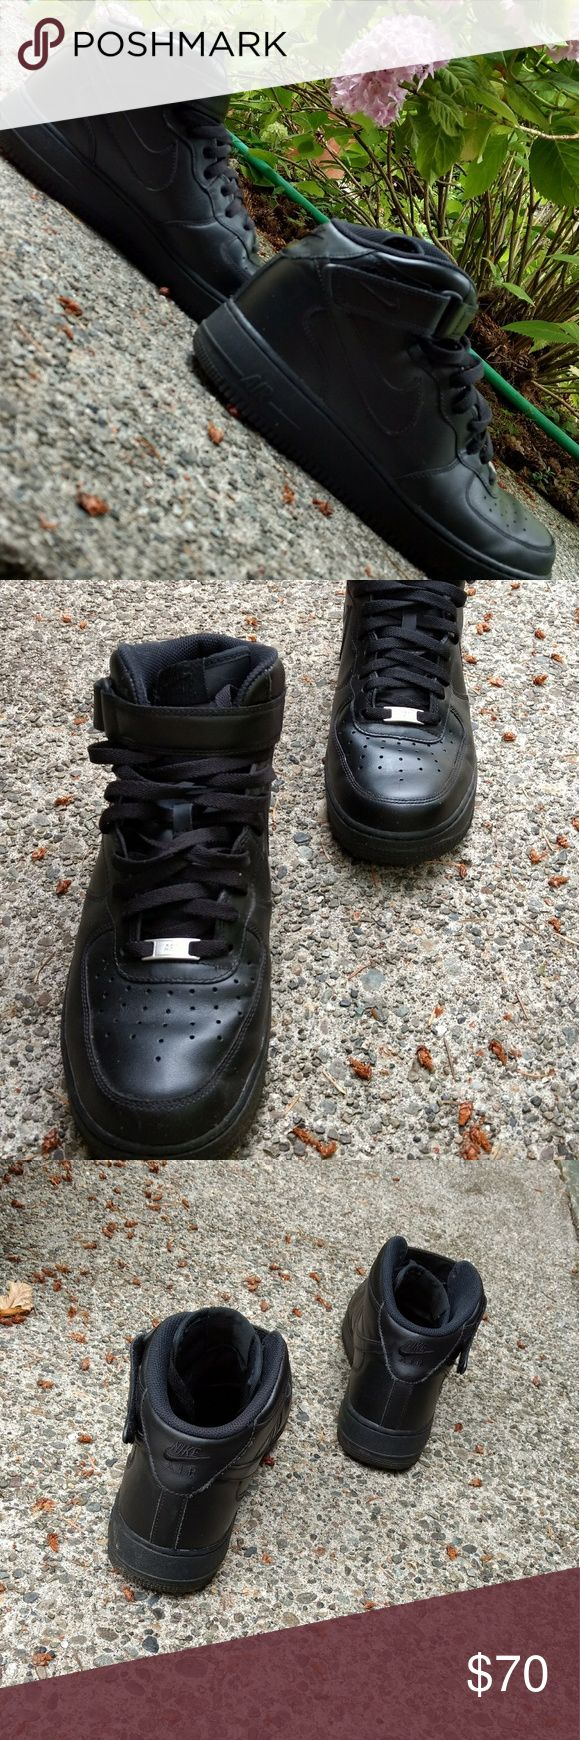 Nike Air Force 1 Mid All black Air Force 1, worn three times and they have a crease shield in them. Very comfortable and will last a very long time. There is no shoe box. Price is debatable. Nike Shoes Sneakers